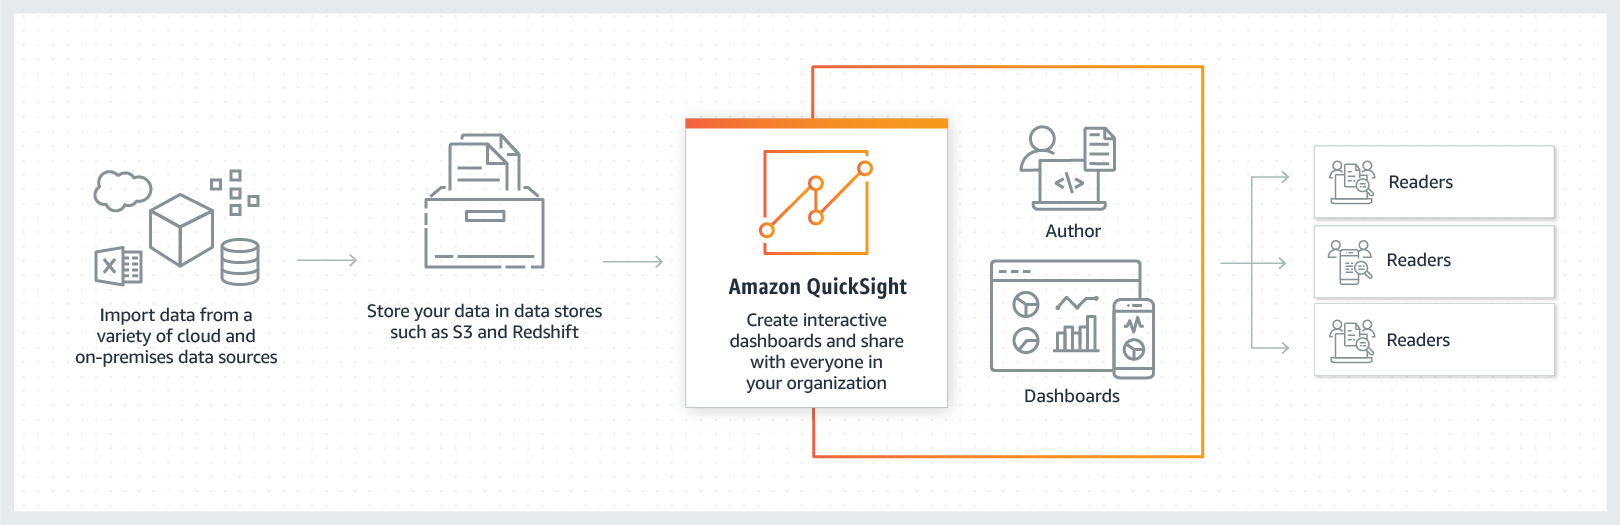 Provide interactive dashboards with Amazon Quicksight